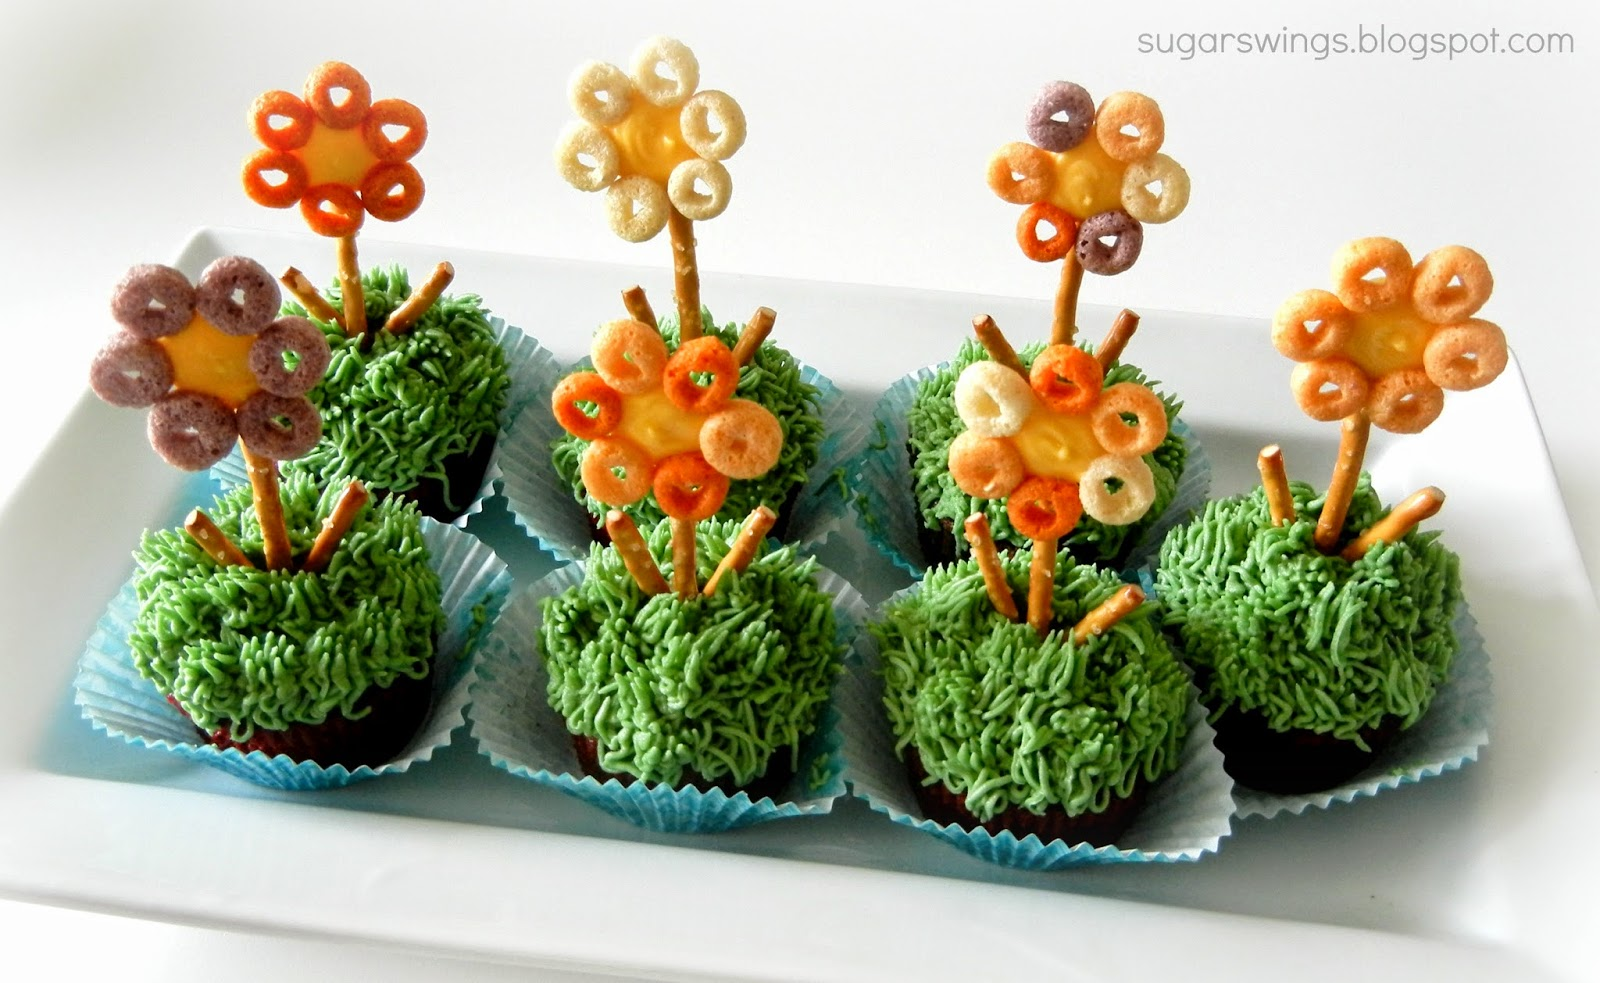 Sugar Swings Serve Some Spring Flower Cupcakes for Donate Life Month